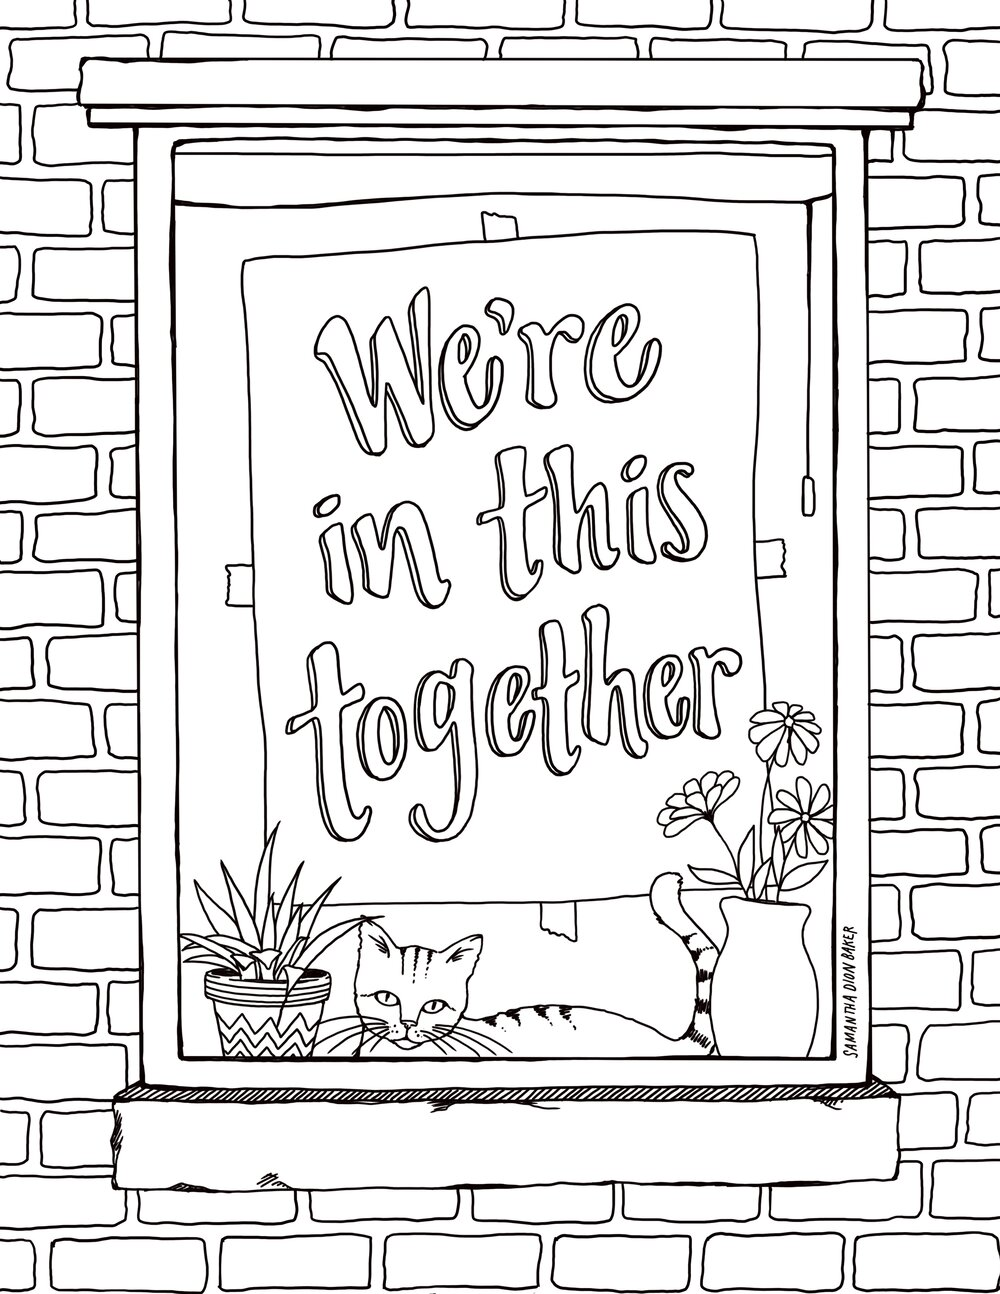 In_This_Together_Window.jpg